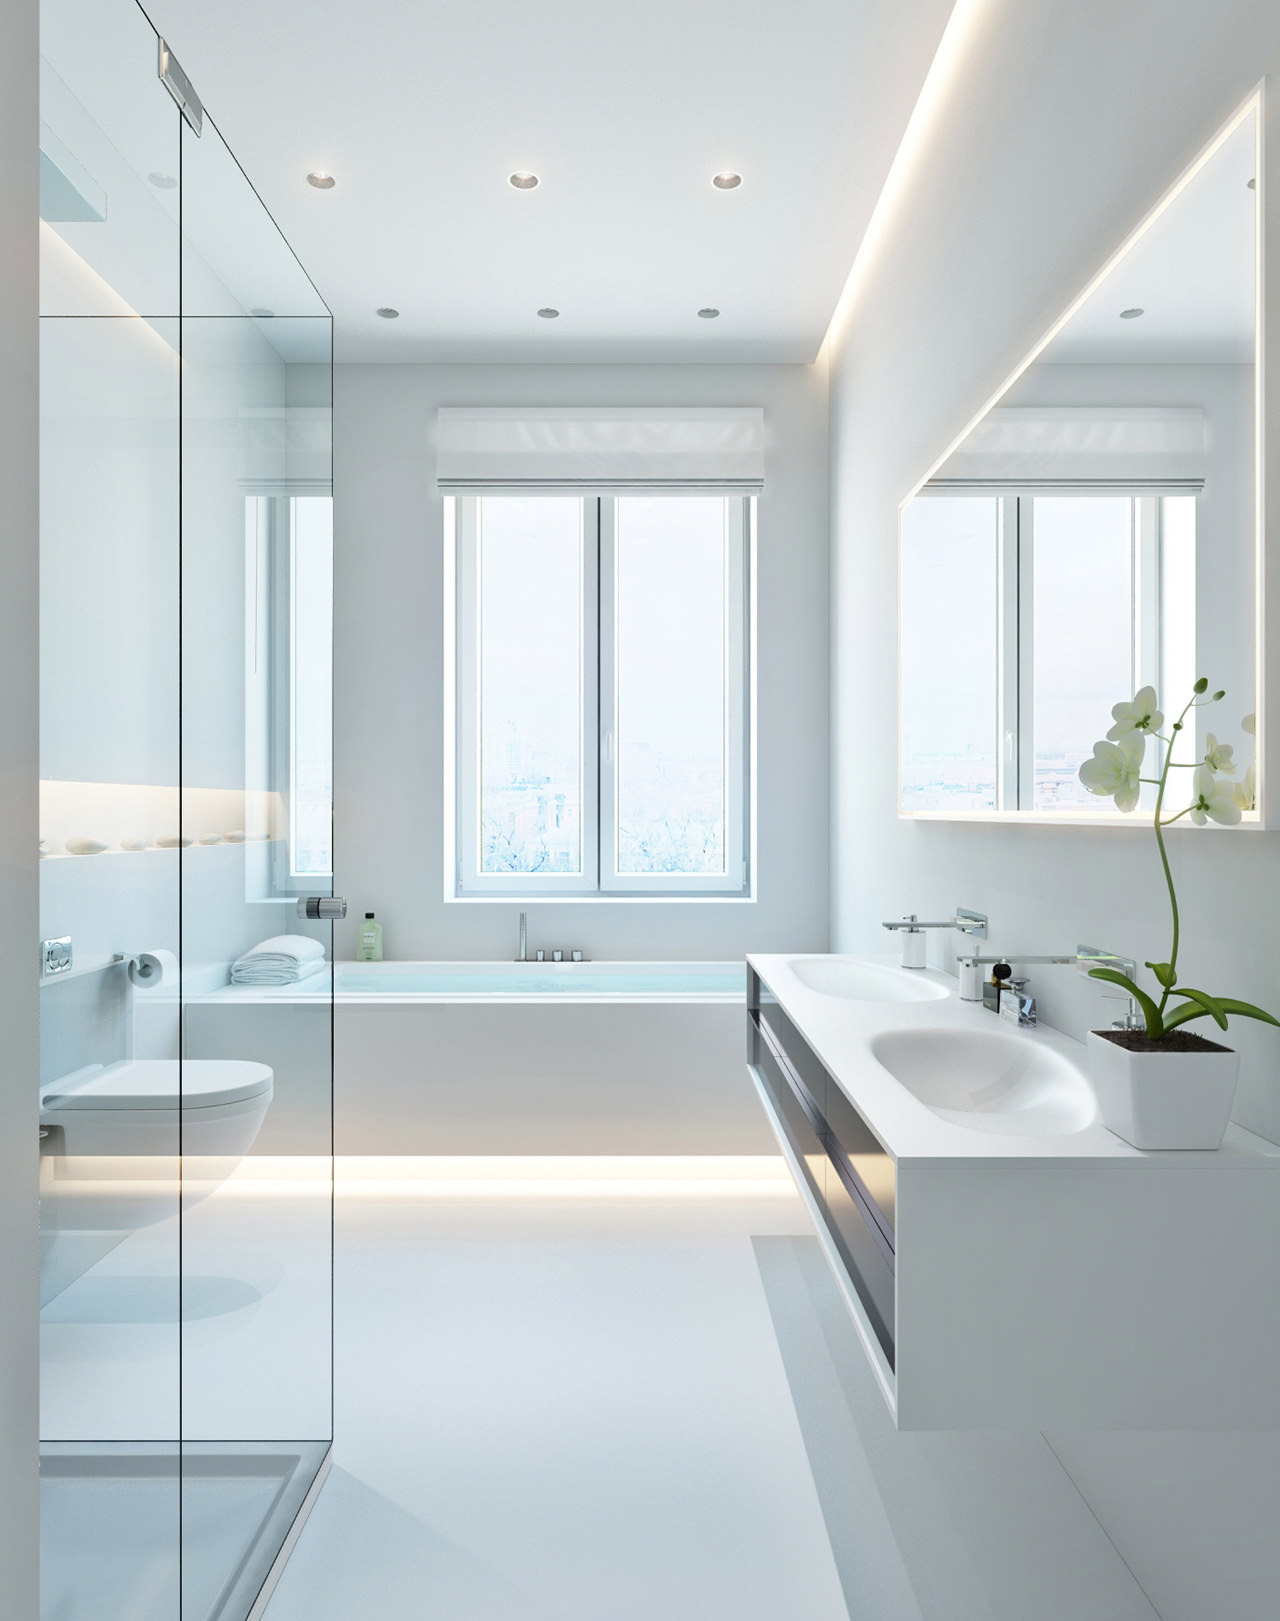 Modern White Bathroom Interior Design Ideas Interiors Inside Ideas Interiors design about Everything [magnanprojects.com]